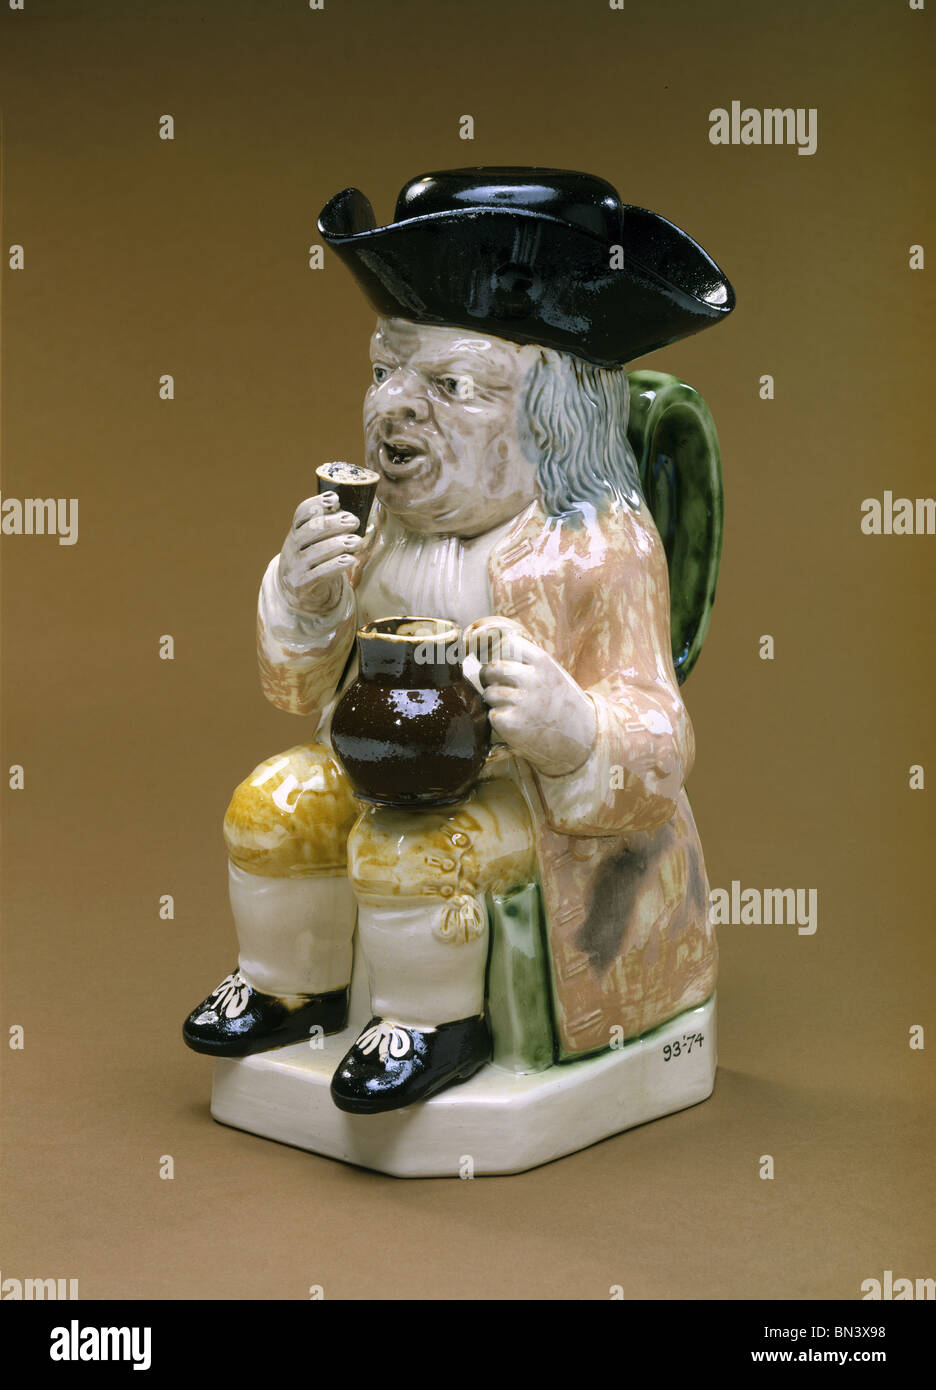 Toby jug. England, late 18th century - Stock Image